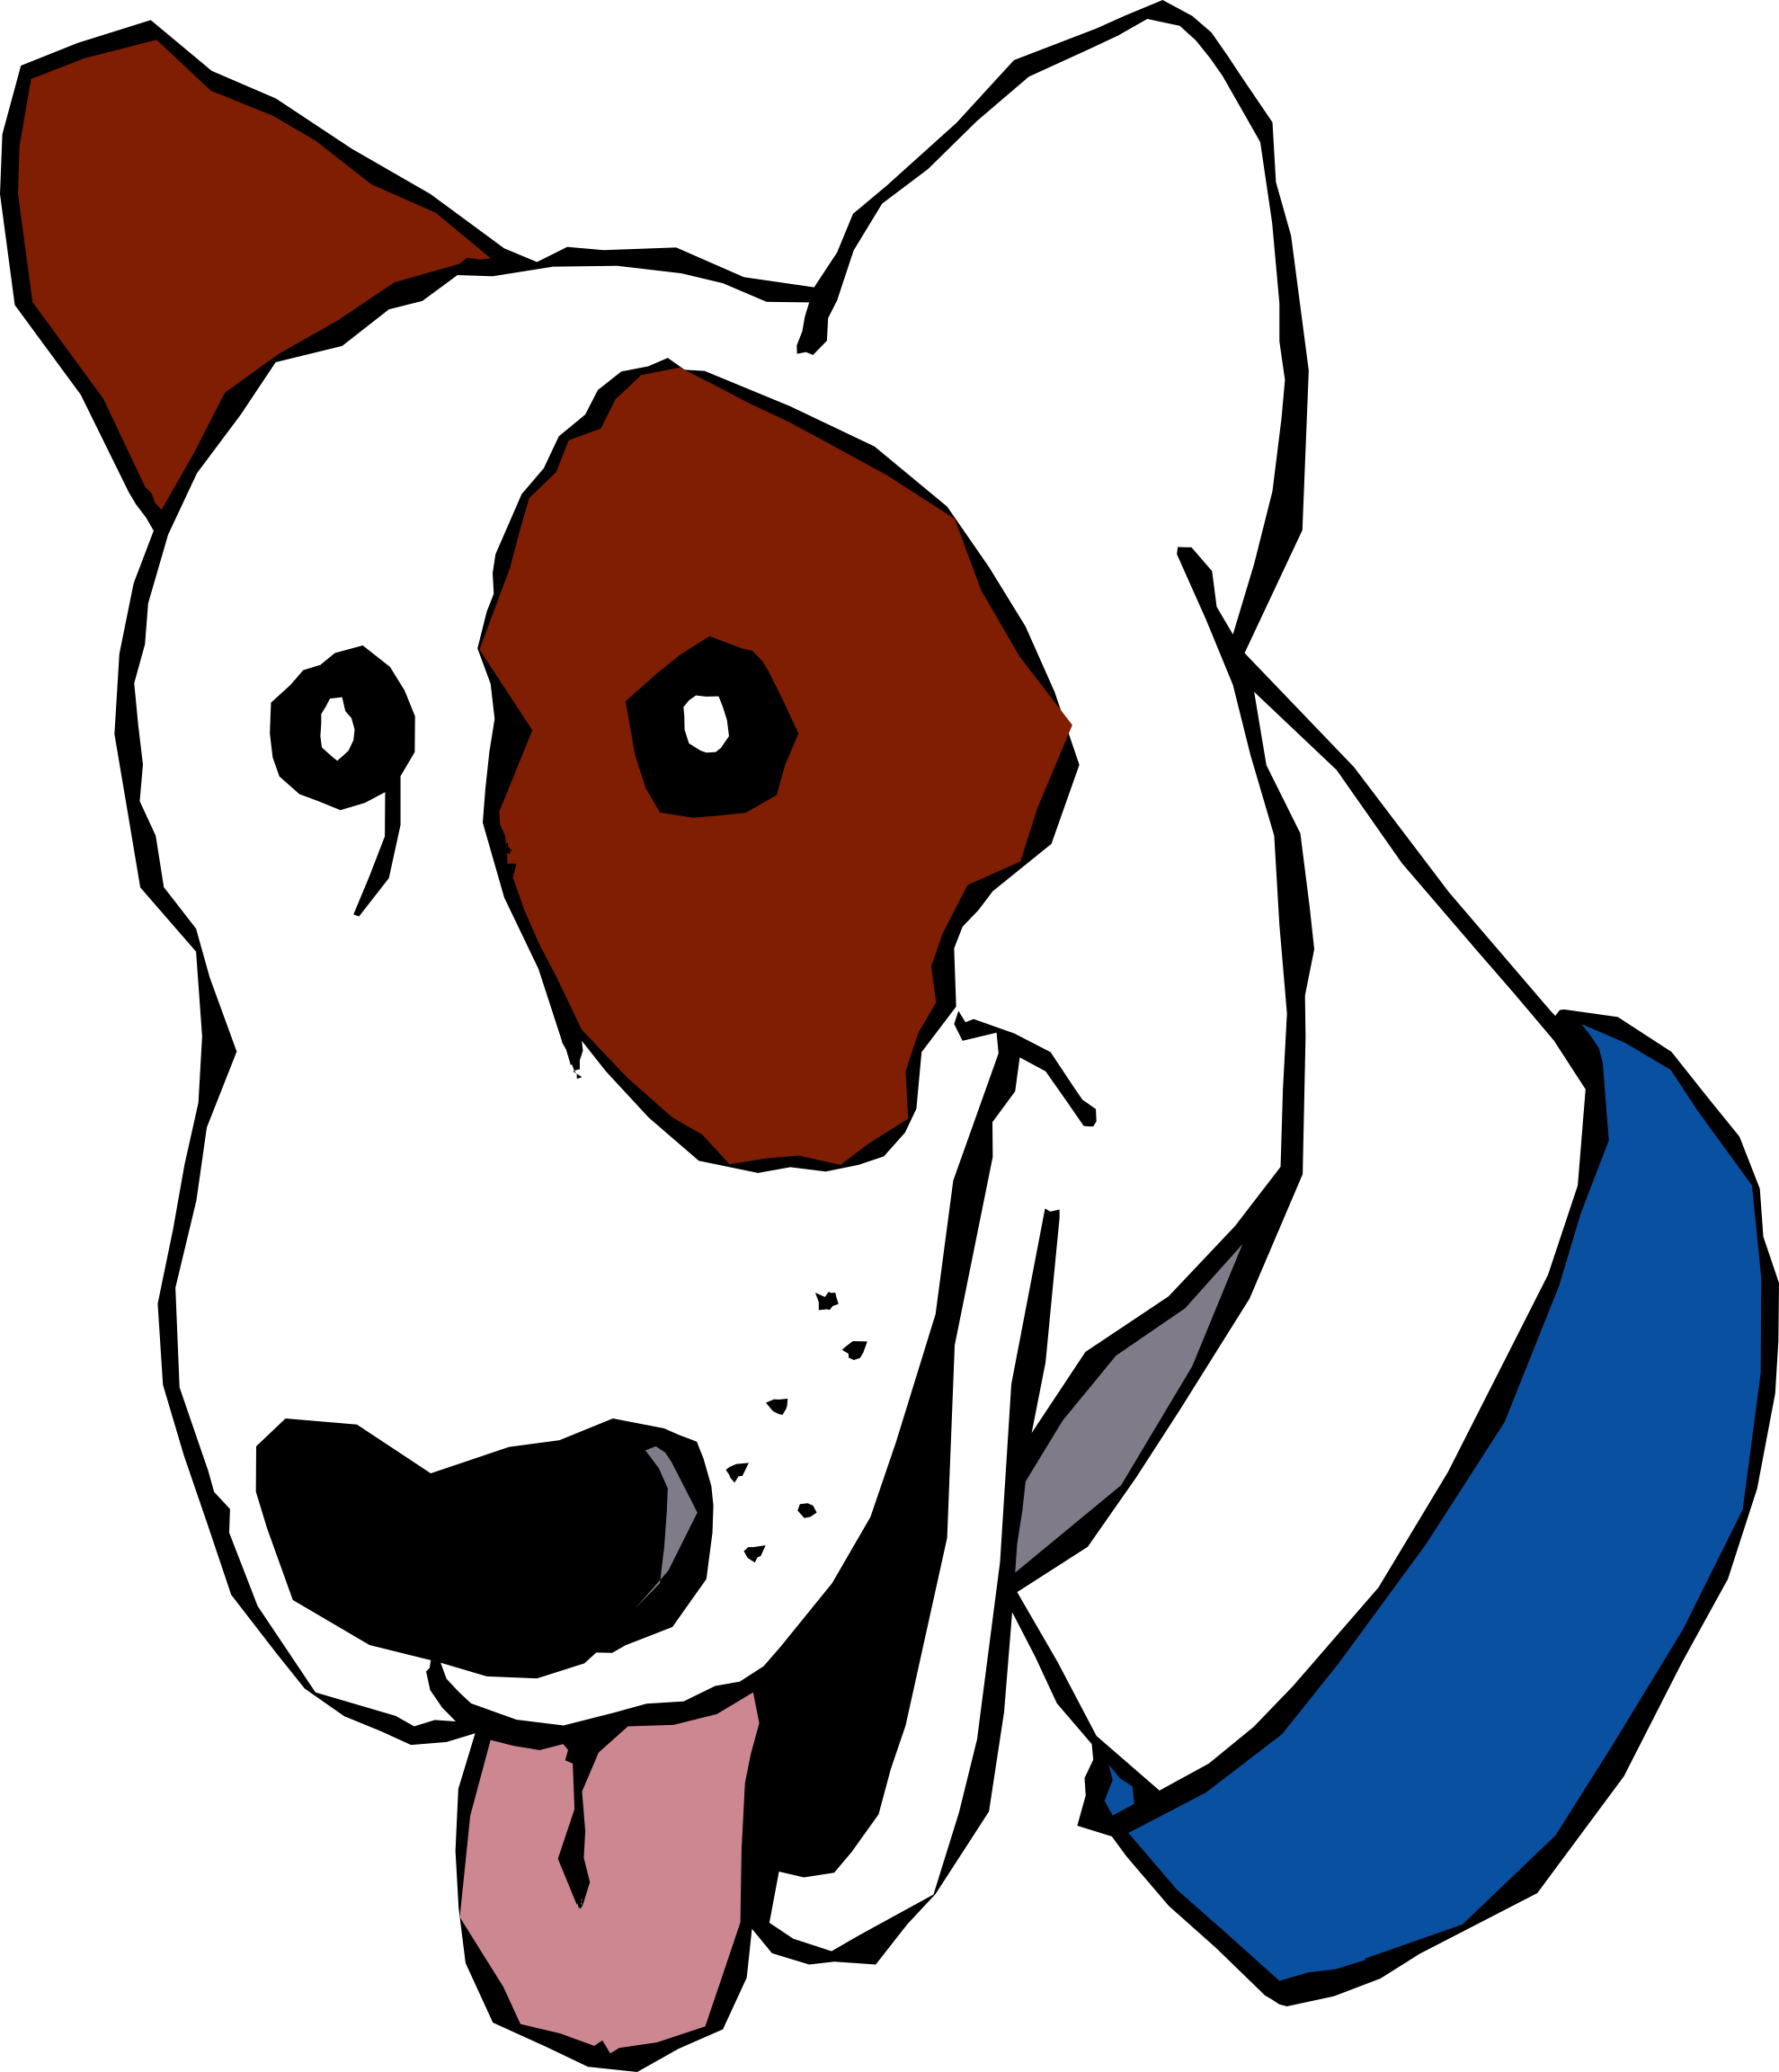 Free images cartoon download. Pet clipart basic dog